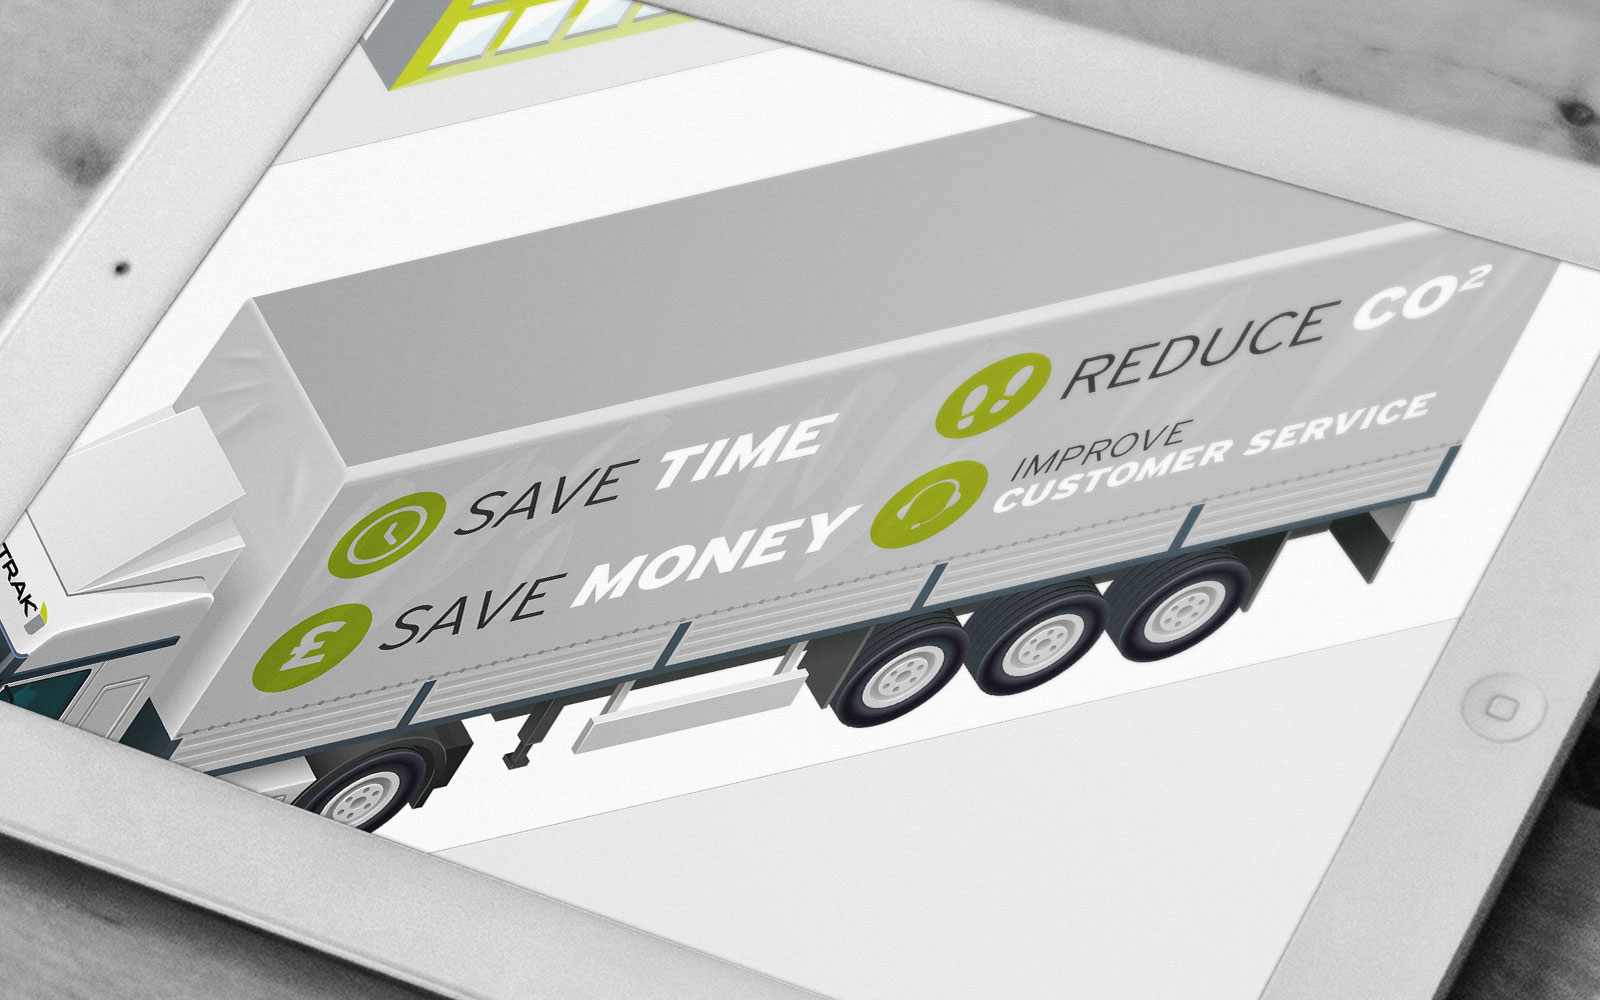 Isotrak interactive presentation of illustrated lorry shown on white tablet